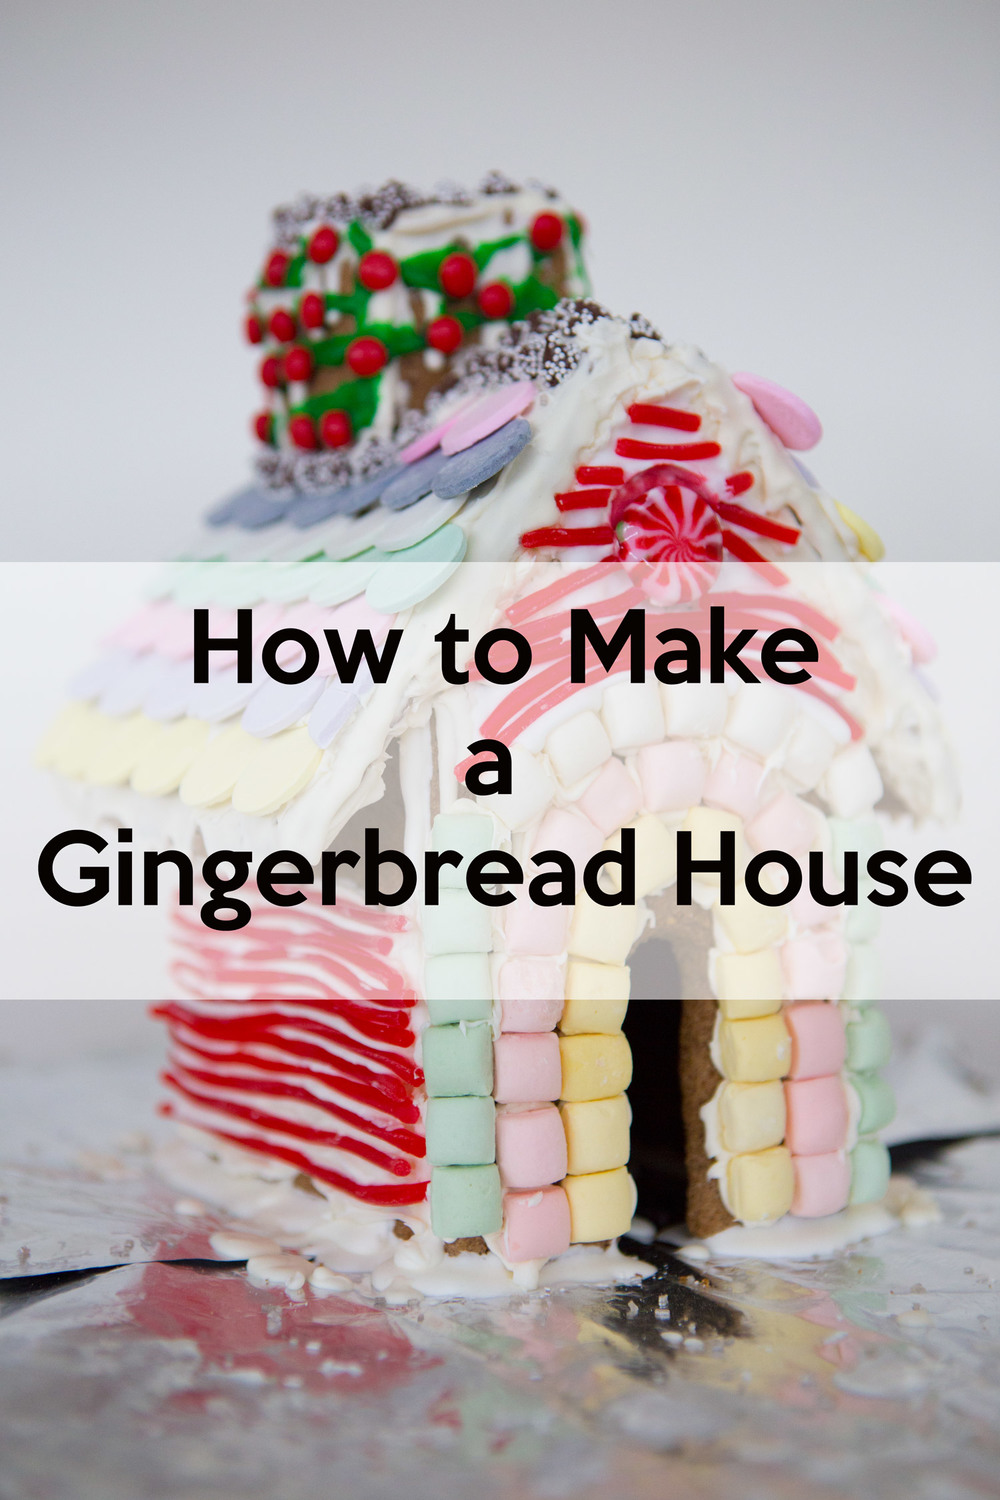 Pin now, and watch our tutorial on how to make a gingerbread house